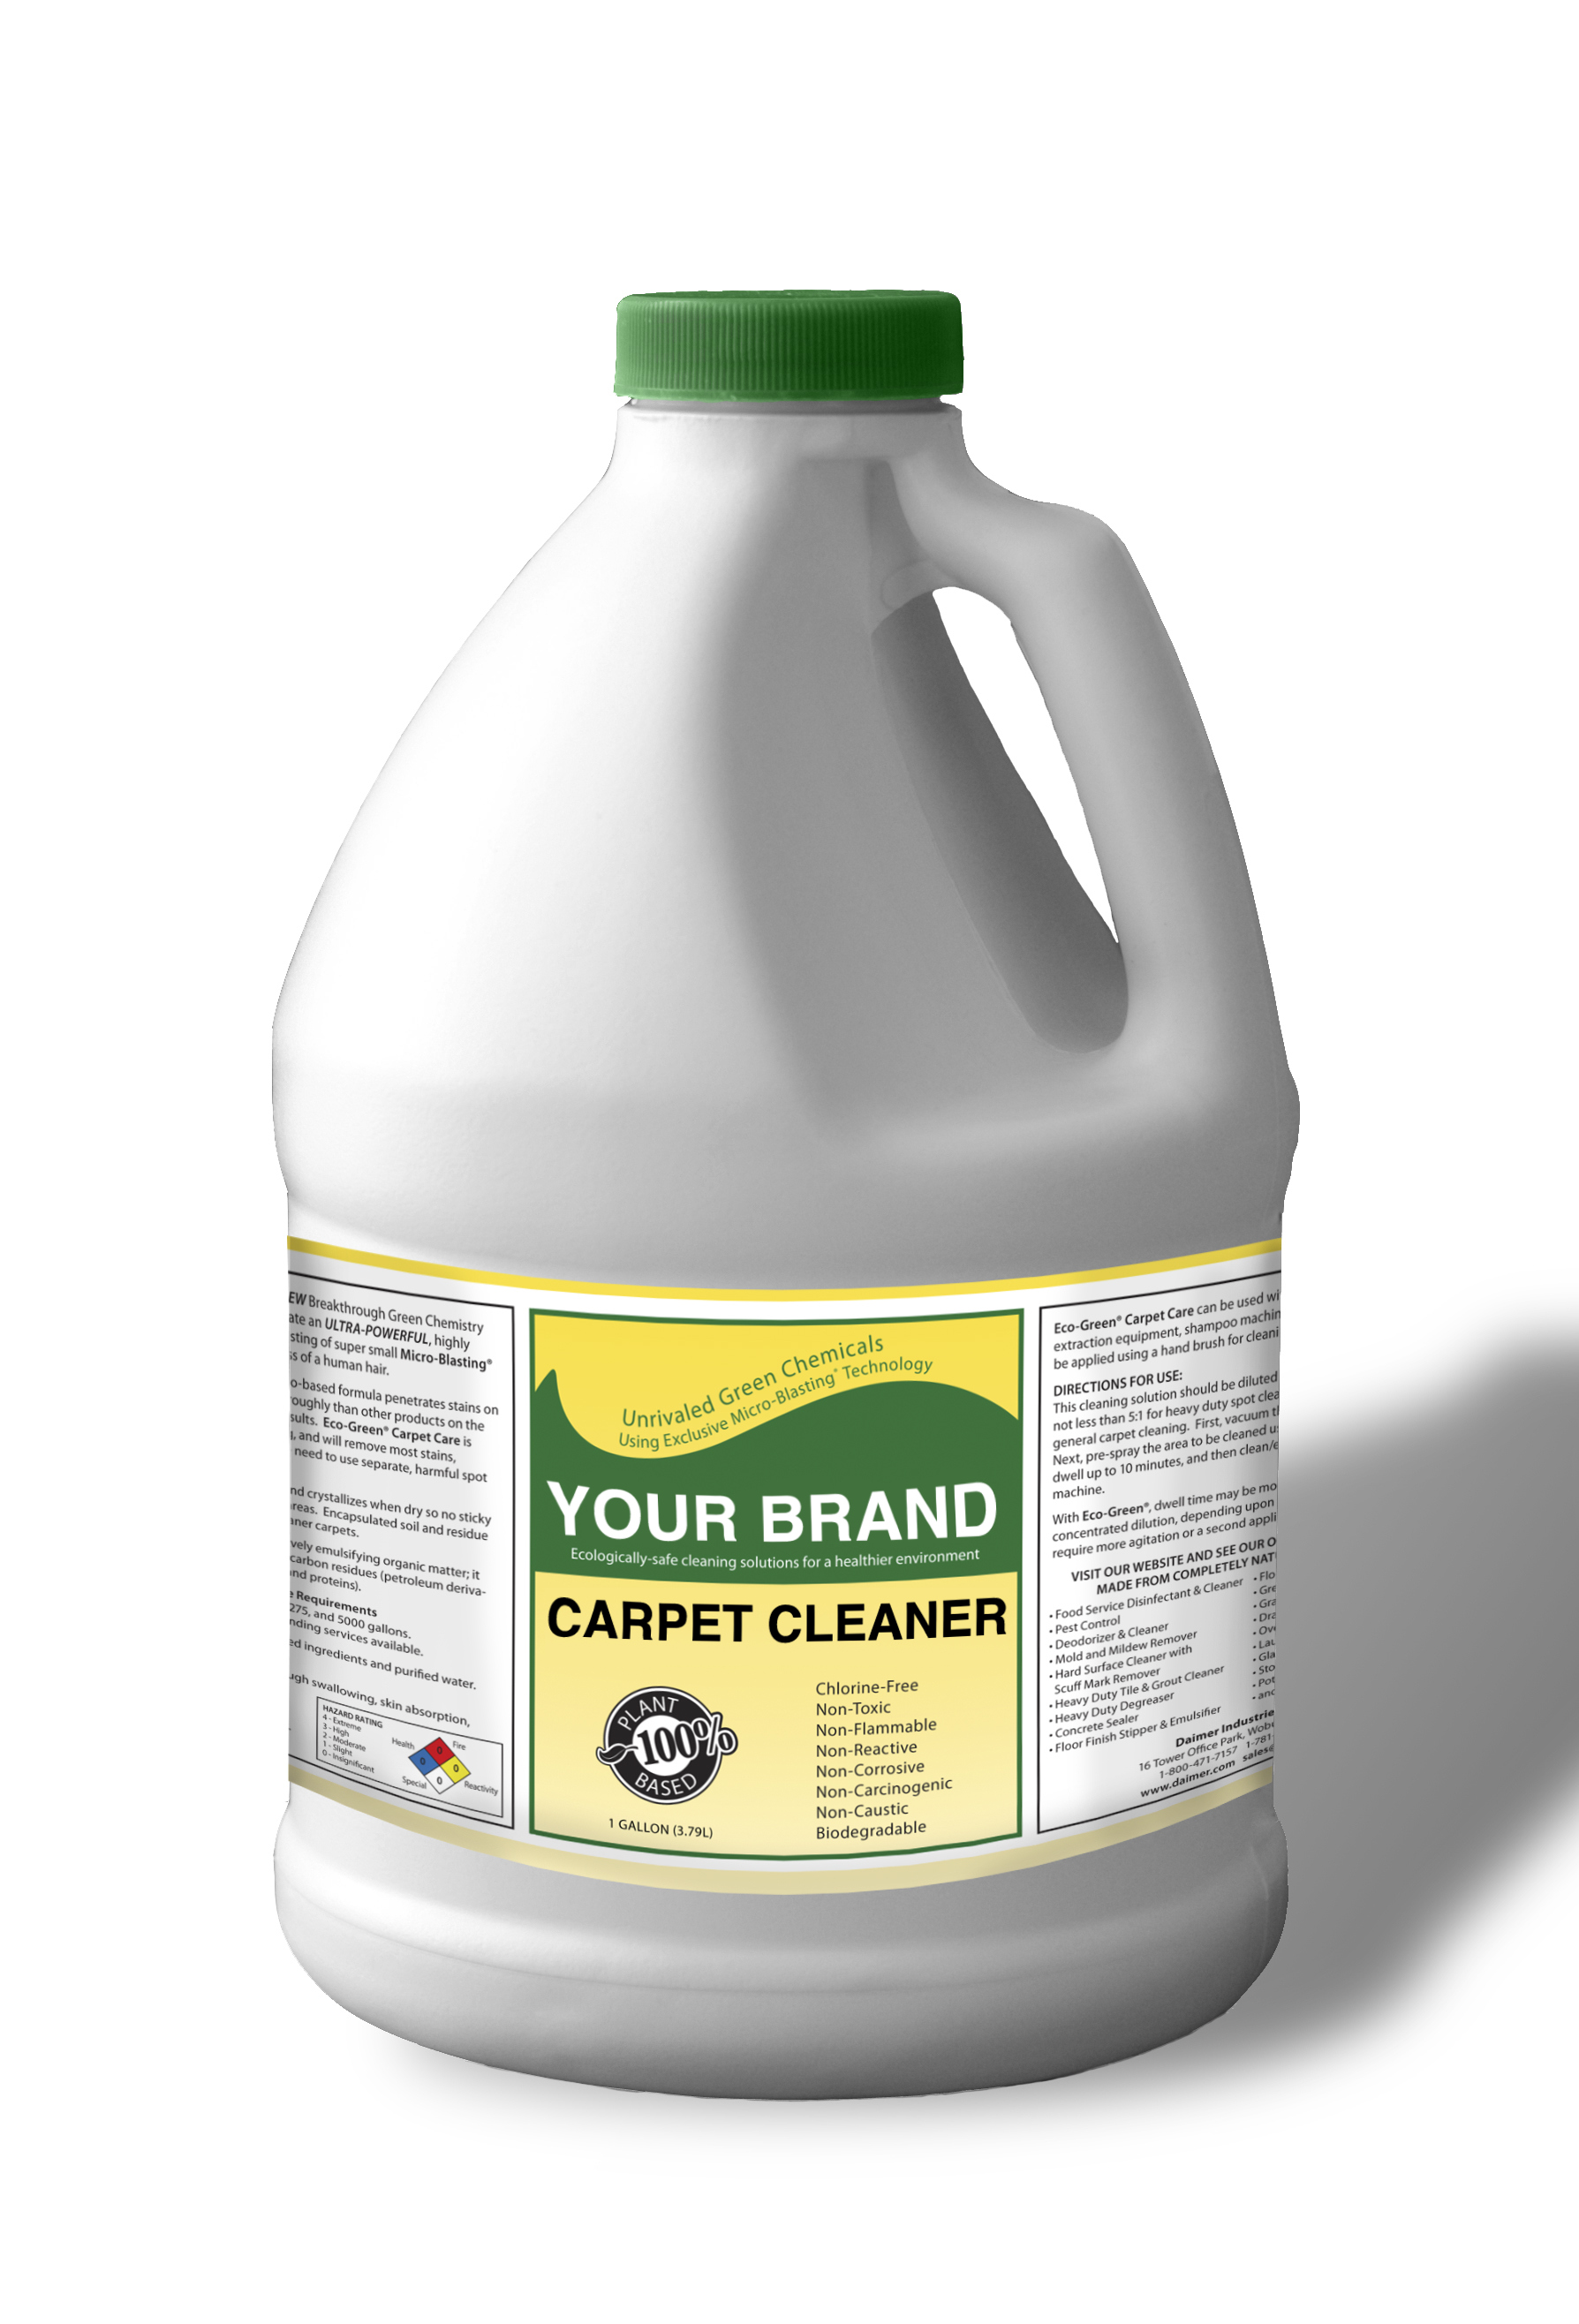 Green Chemicals By Eco Green 174 Available To Chemical Supply